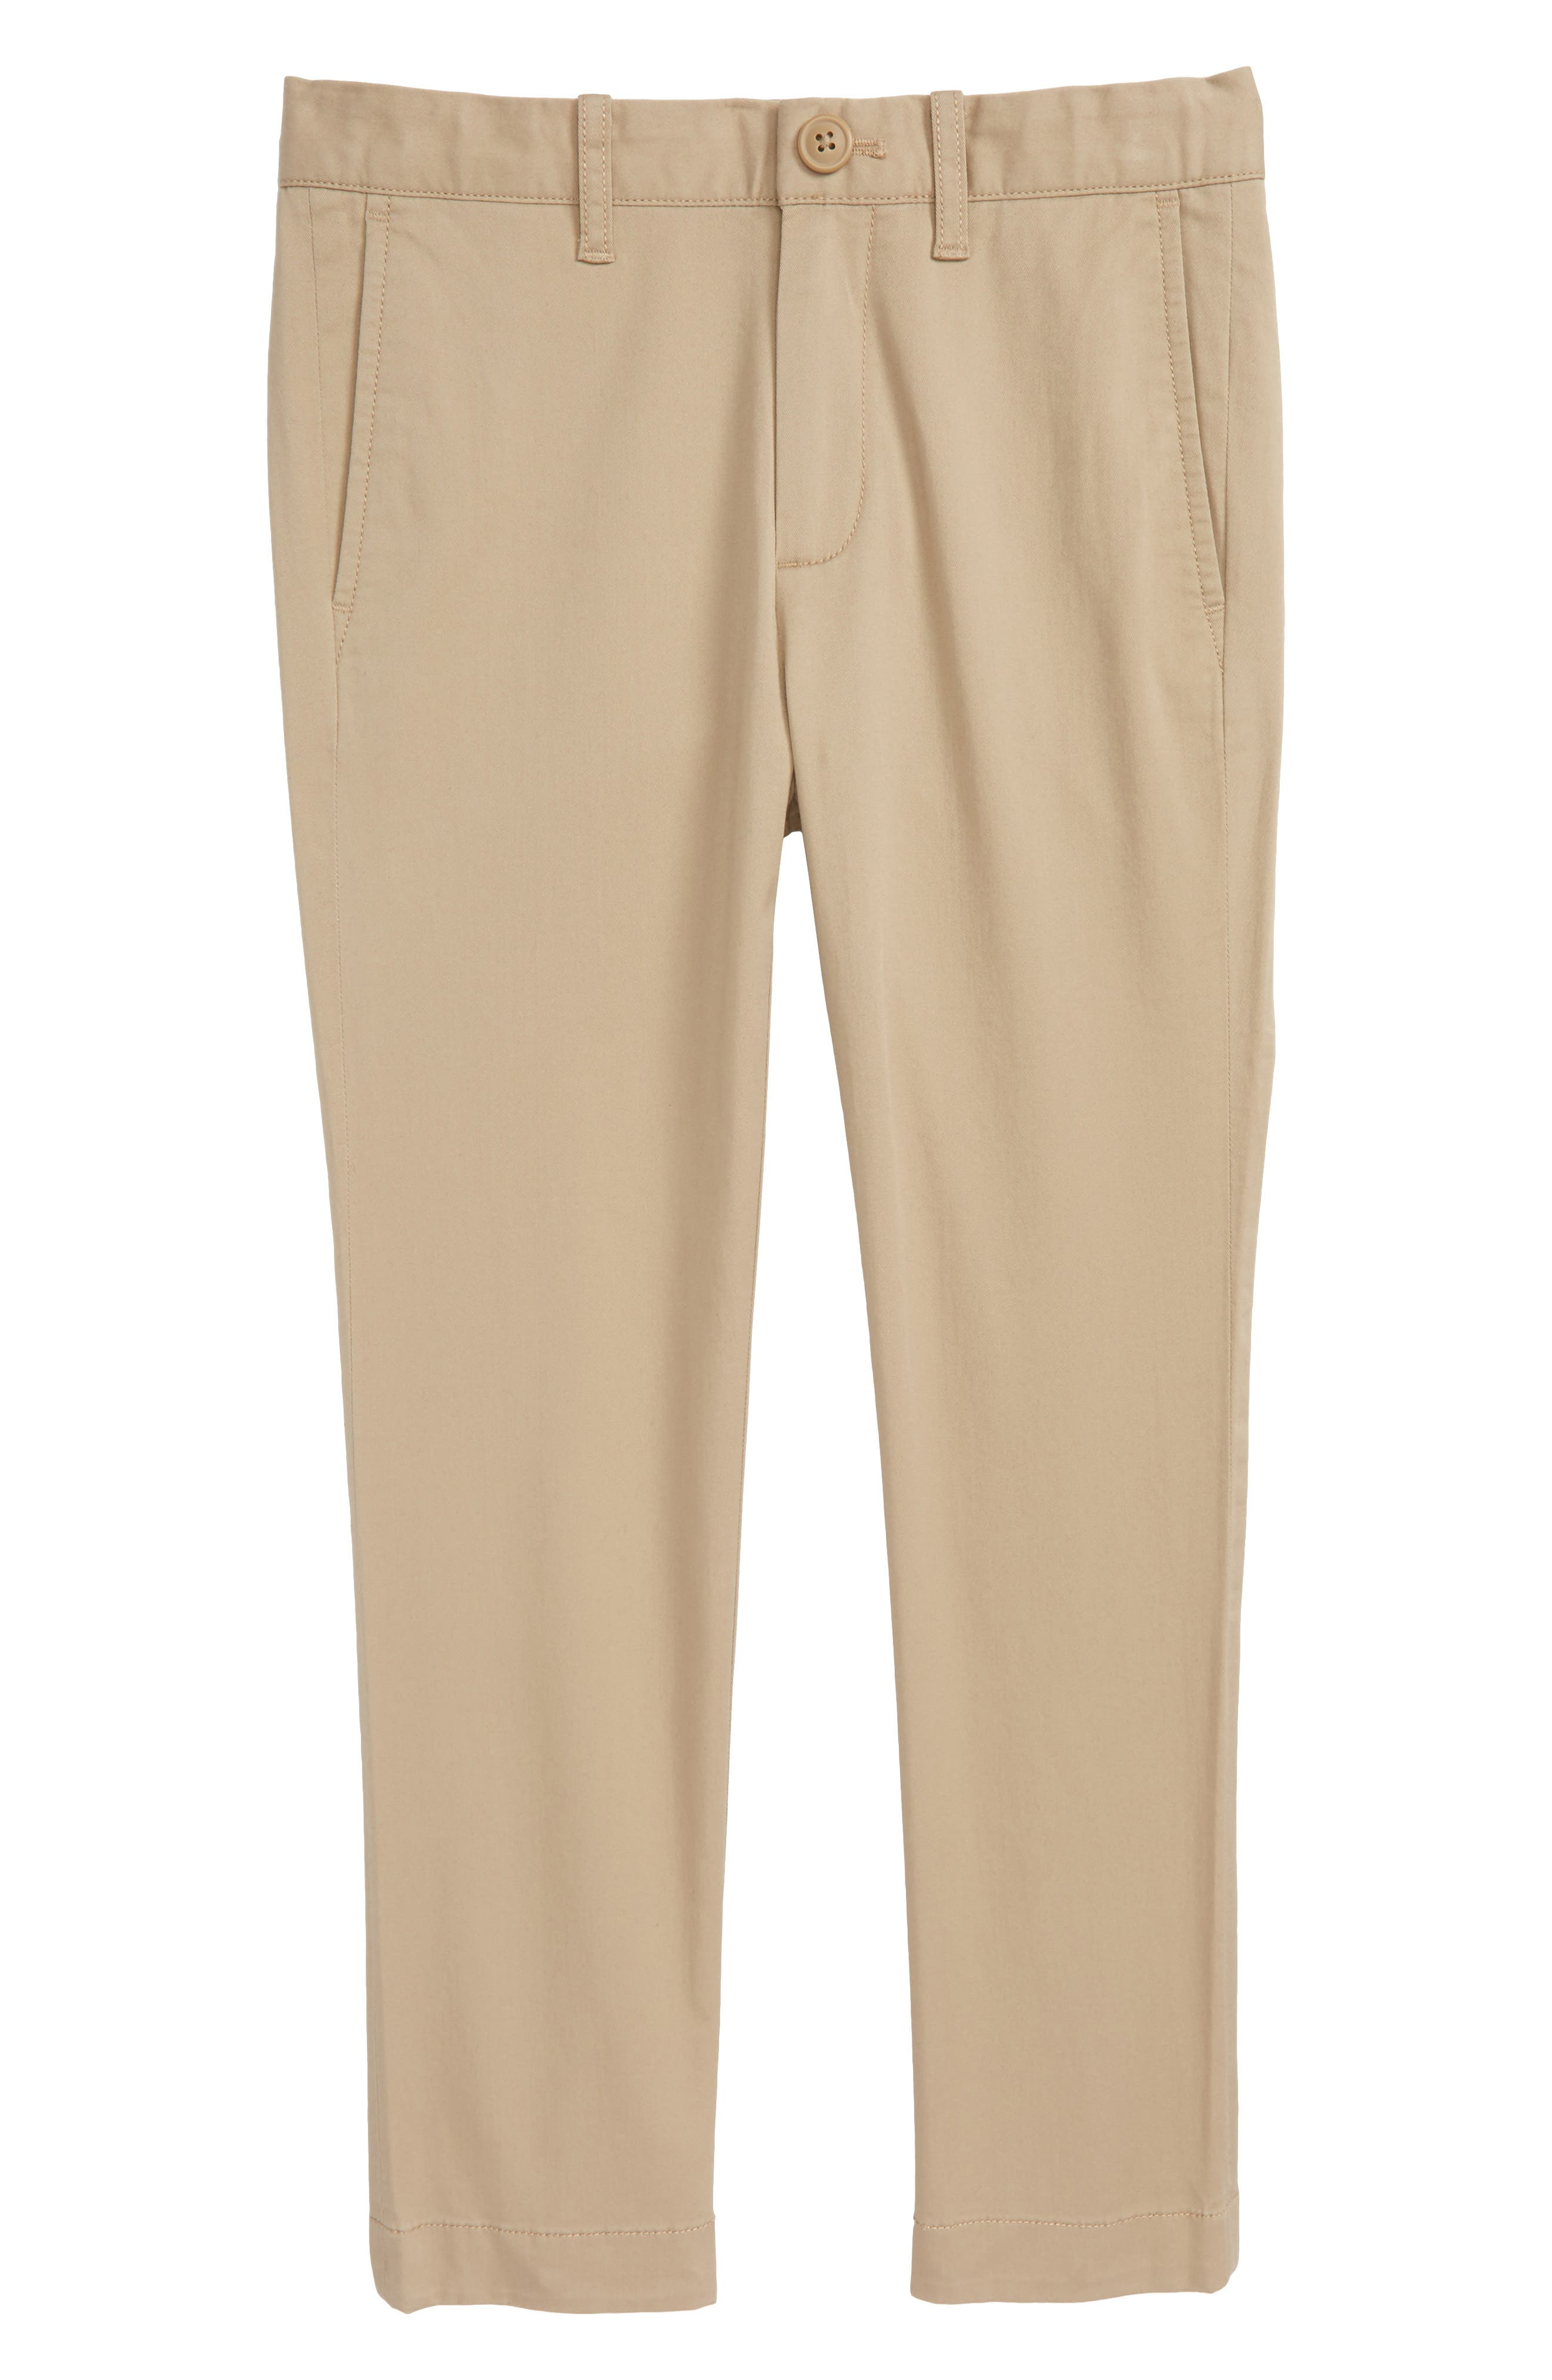 CREWCUTS BY J.CREW Skinny Stretch Chino Pants, Main, color, 250